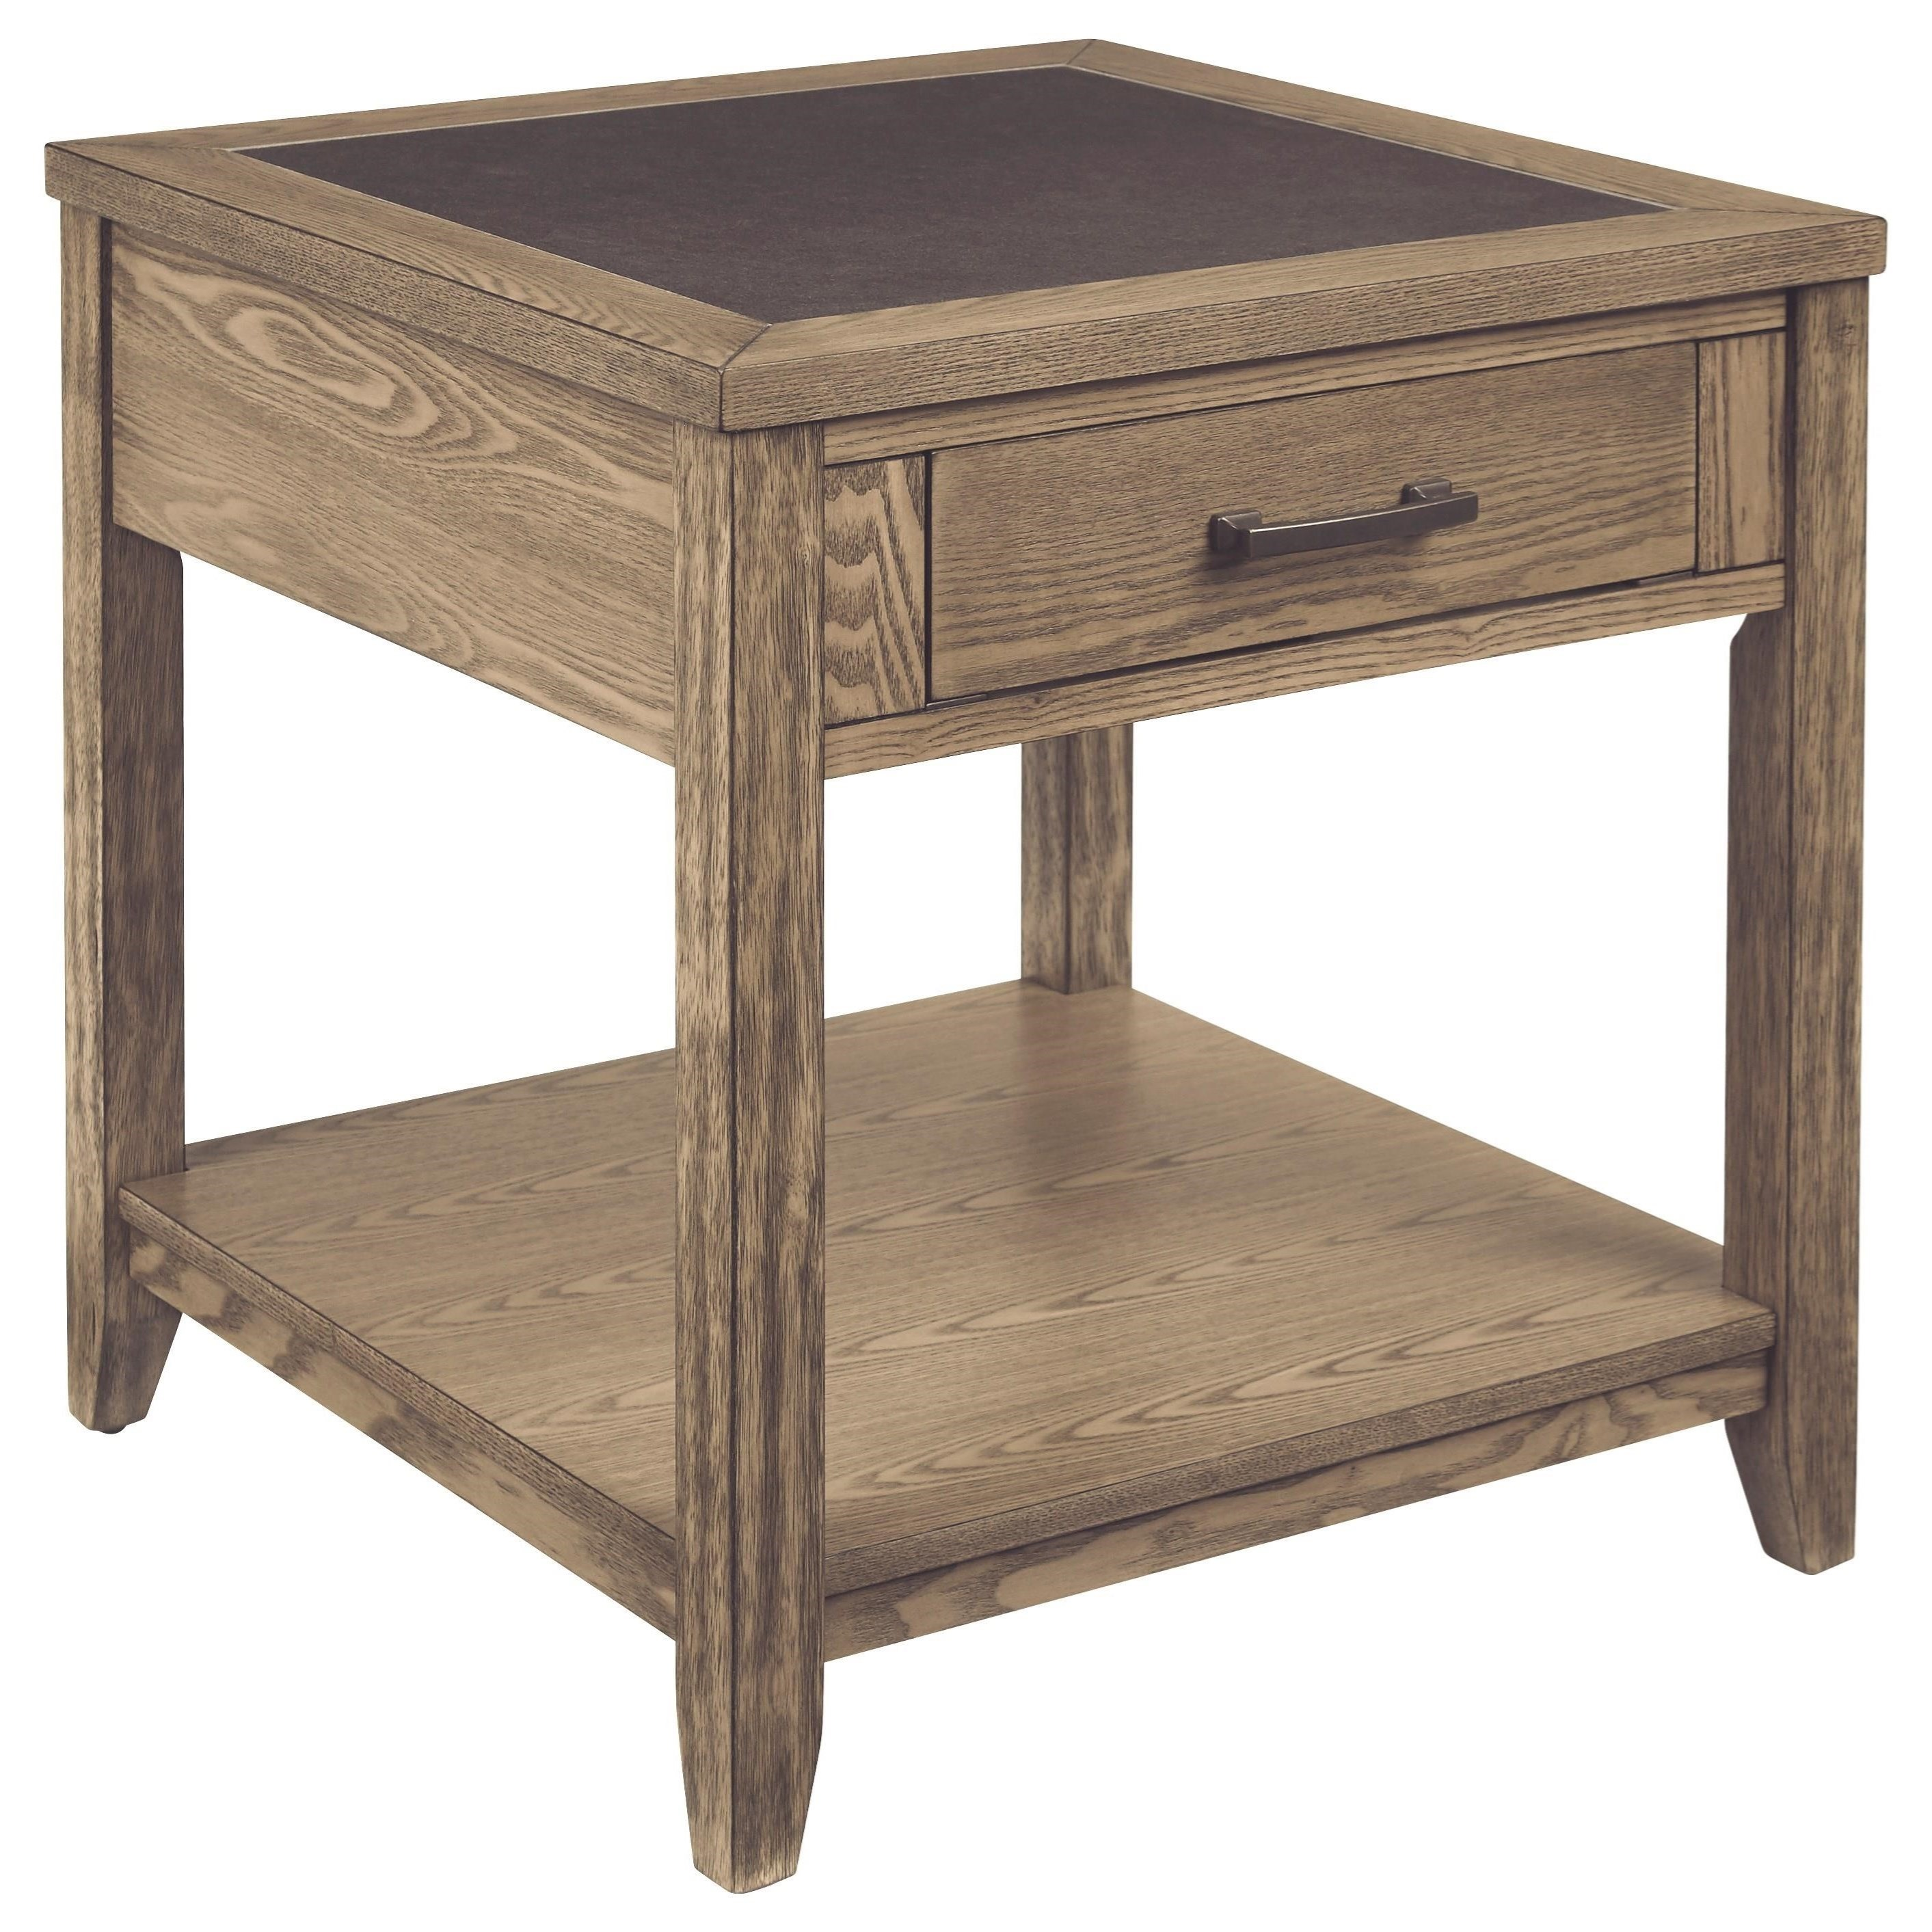 Sun Valley Square End Table by Progressive Furniture at Van Hill Furniture